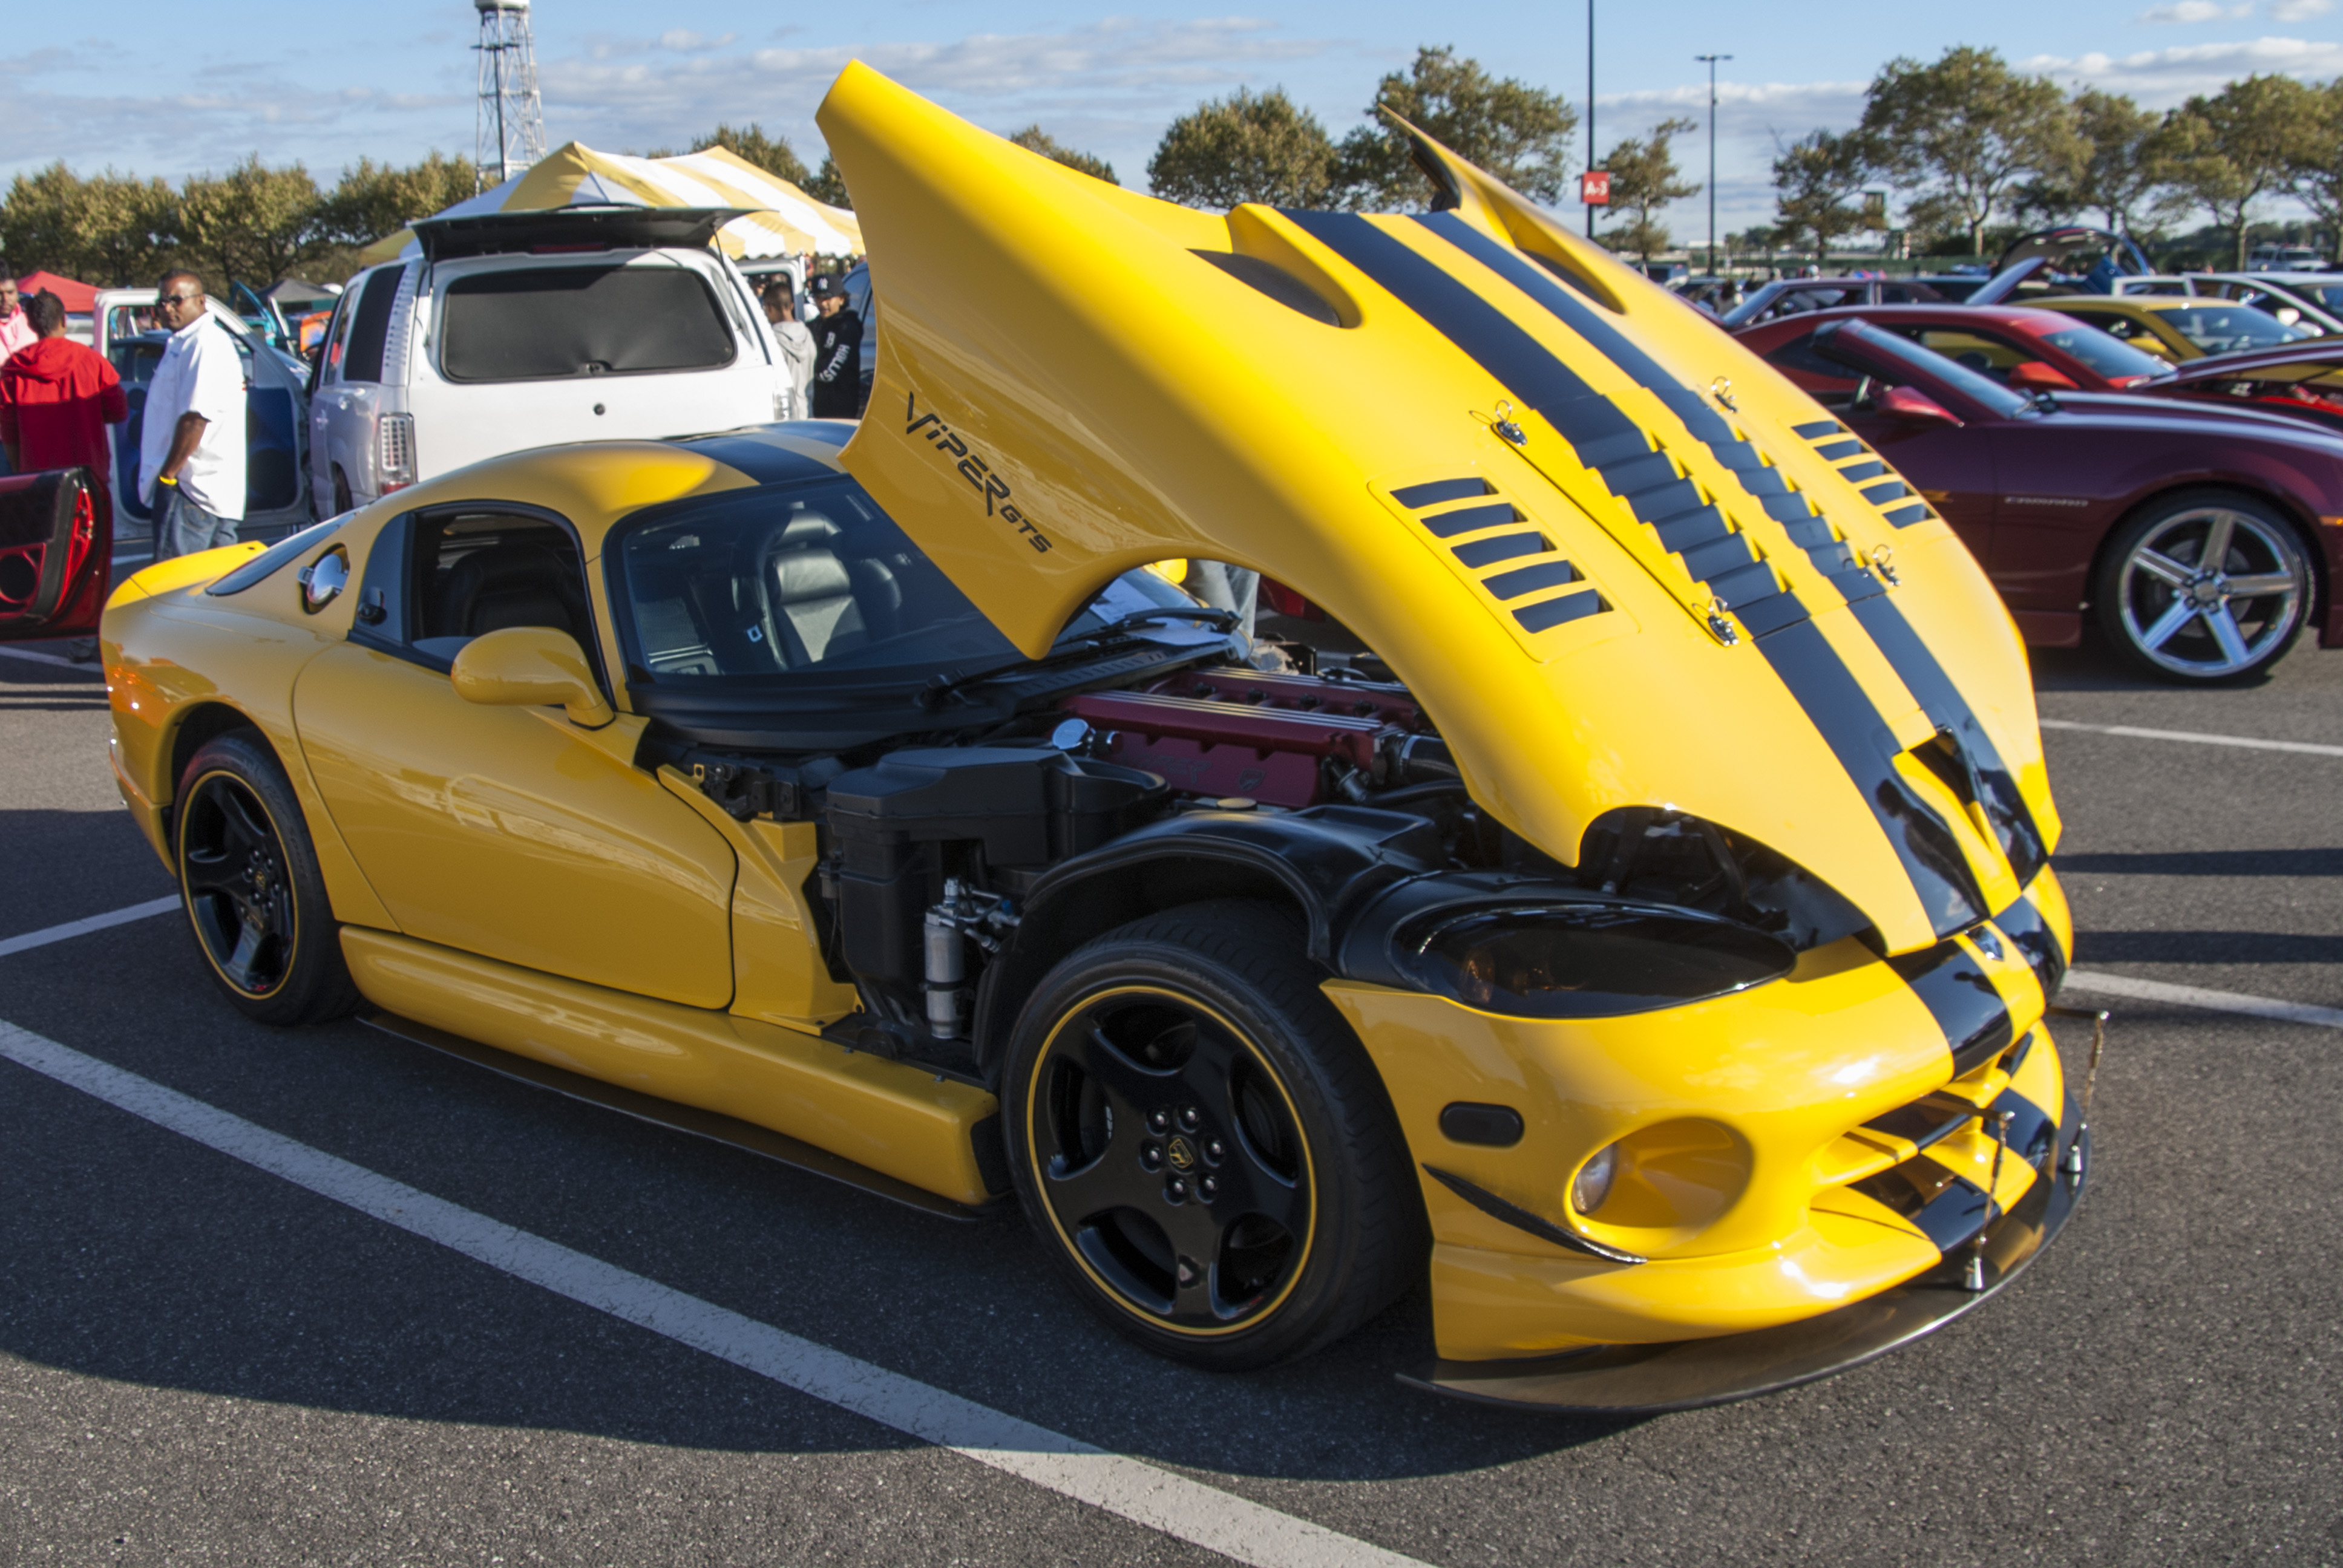 Resorts World Car Show Draws Thousands Of Auto Enthusiasts The - Show all cars